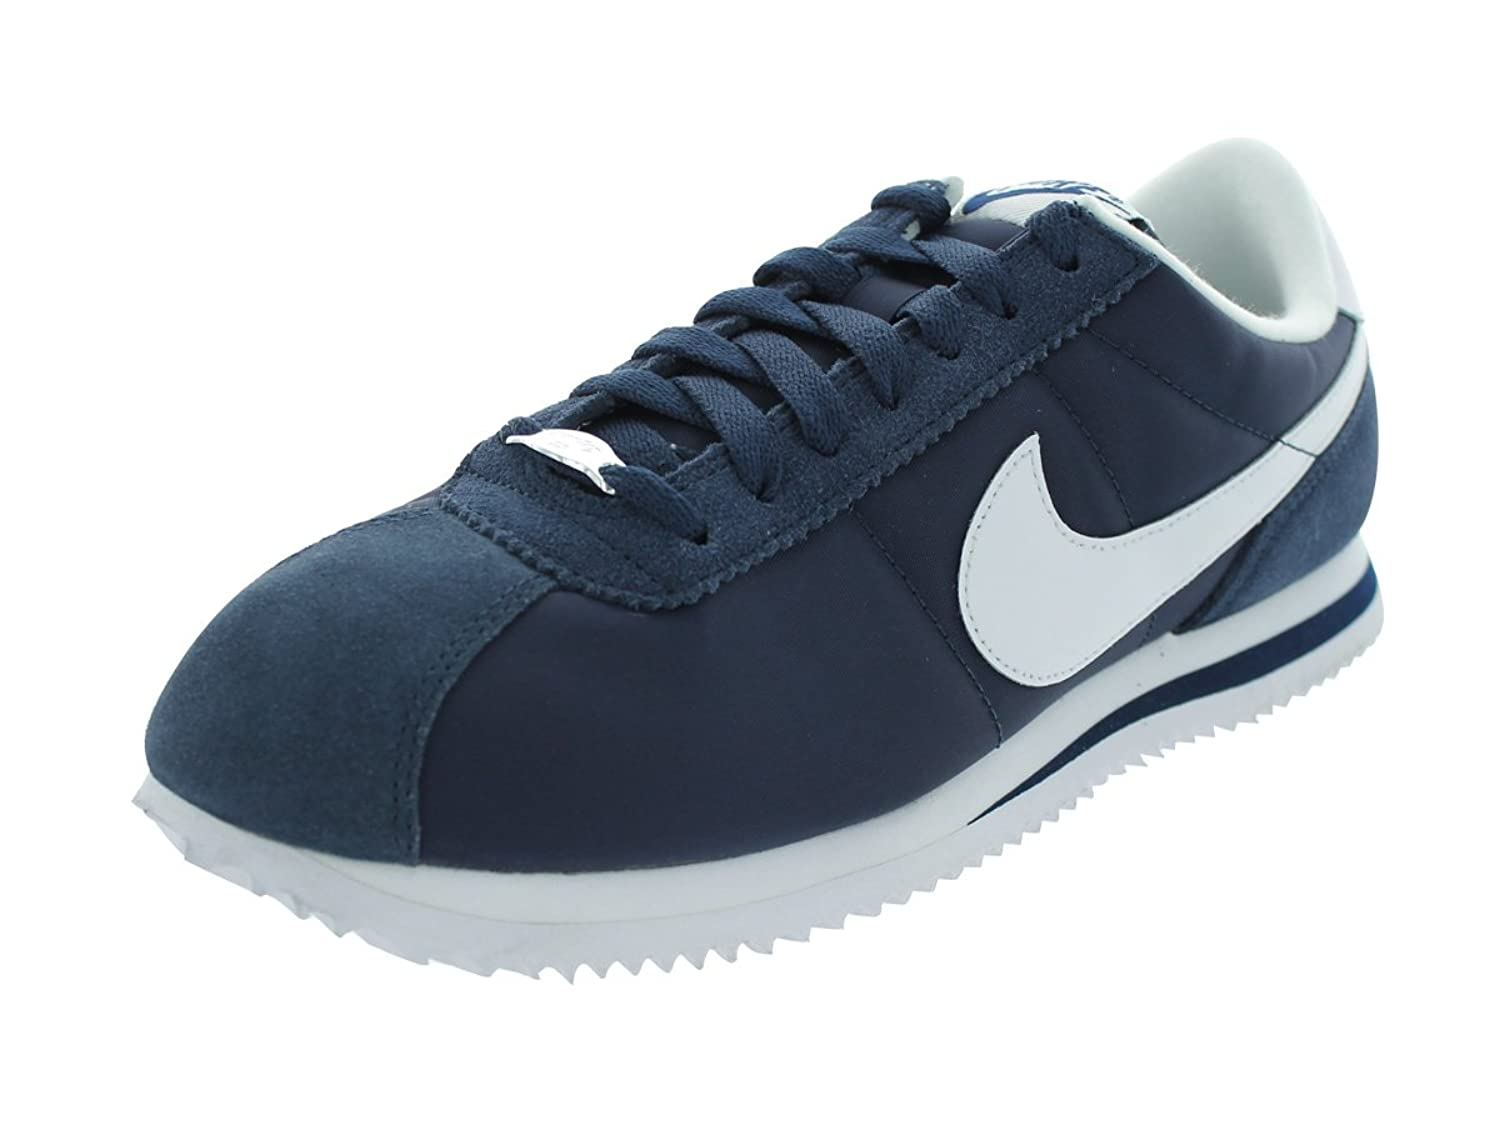 Nike Men's Cortez Basic Nylon '06 Sneakers